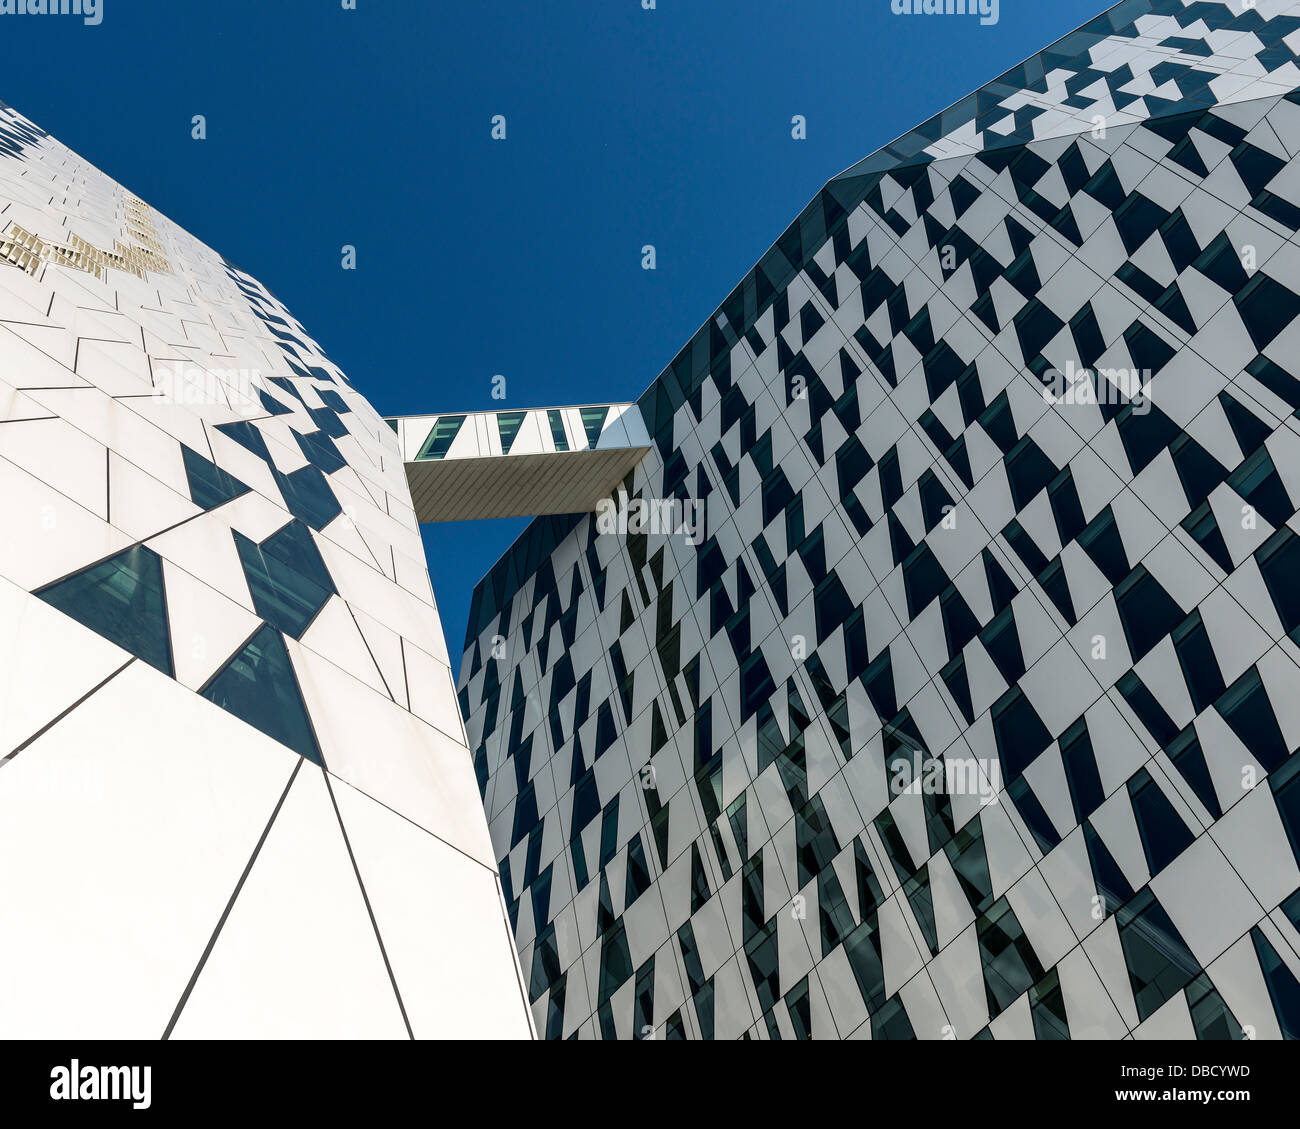 Bella Sky Hotel, Copenhagen, Denmark. Architect: 3XN, 2011. View of both towers and sky bridge from below. Stock Photo